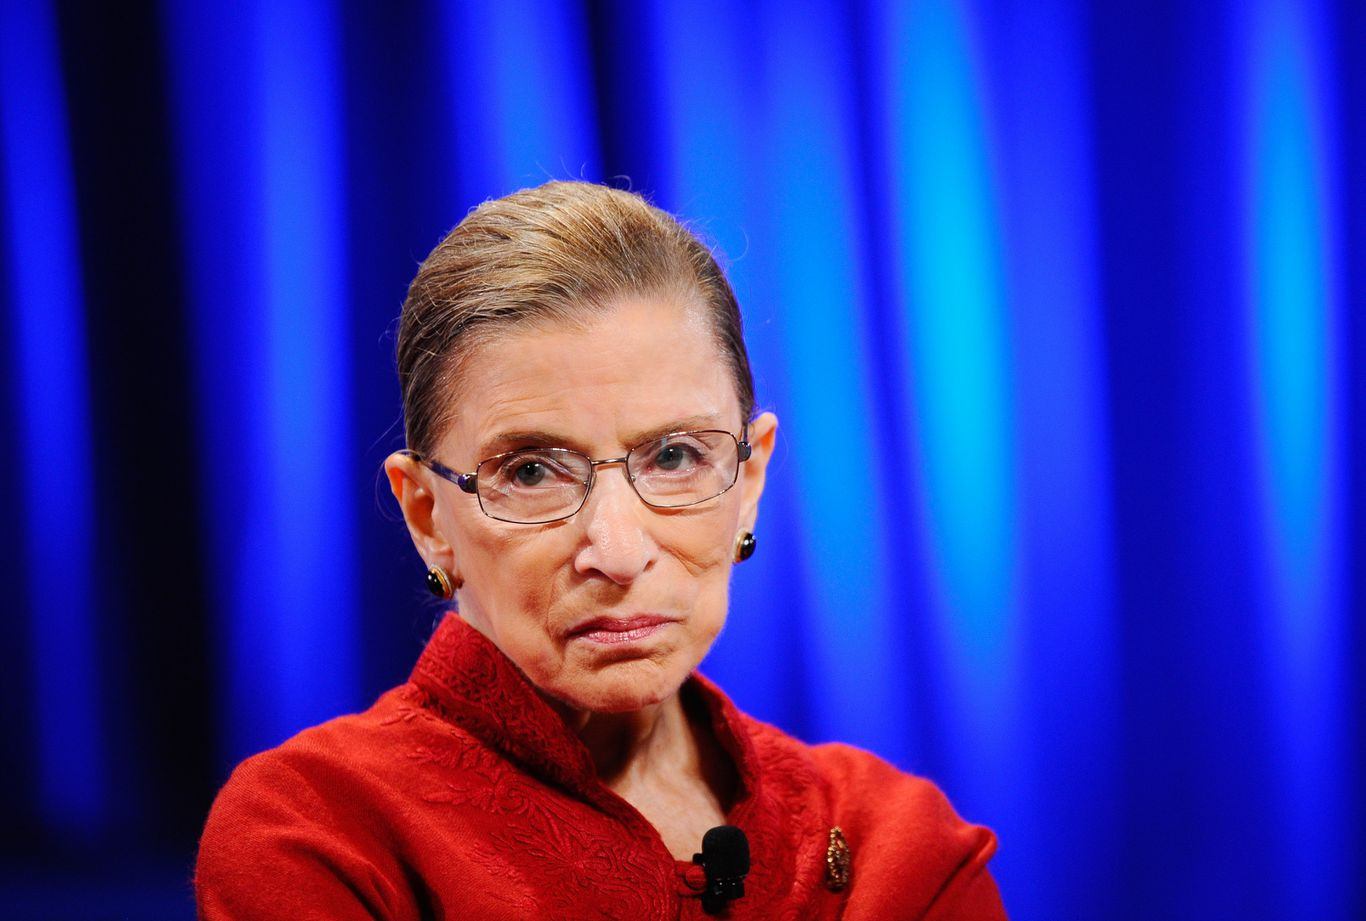 Ruth Bader Ginsburg will lie in state in Capitol's National Statuary Hall thumbnail